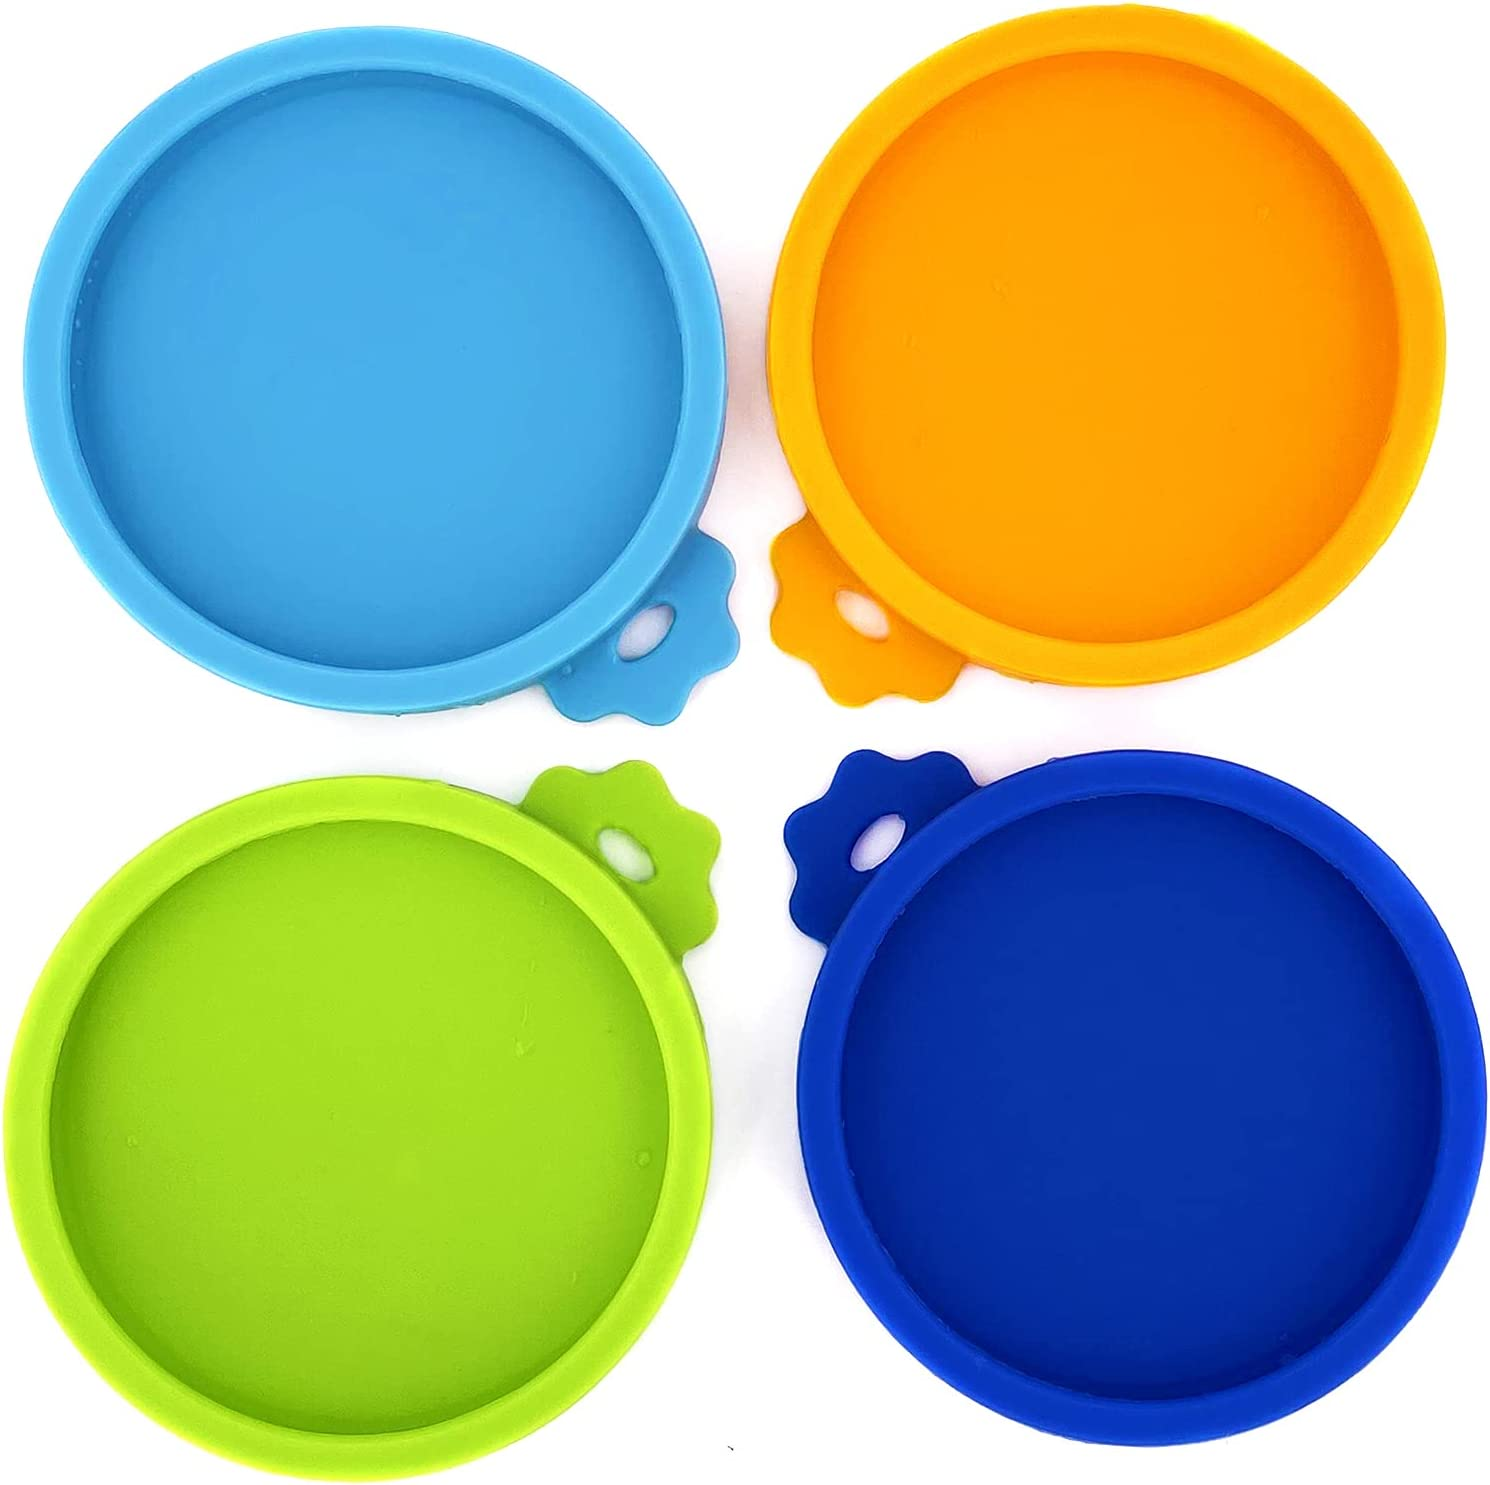 Comtim 4 Pack Cat Food Can Lids, Silicone Small Pet Food Can Lids Covers for 3 oz Cat Food Cans